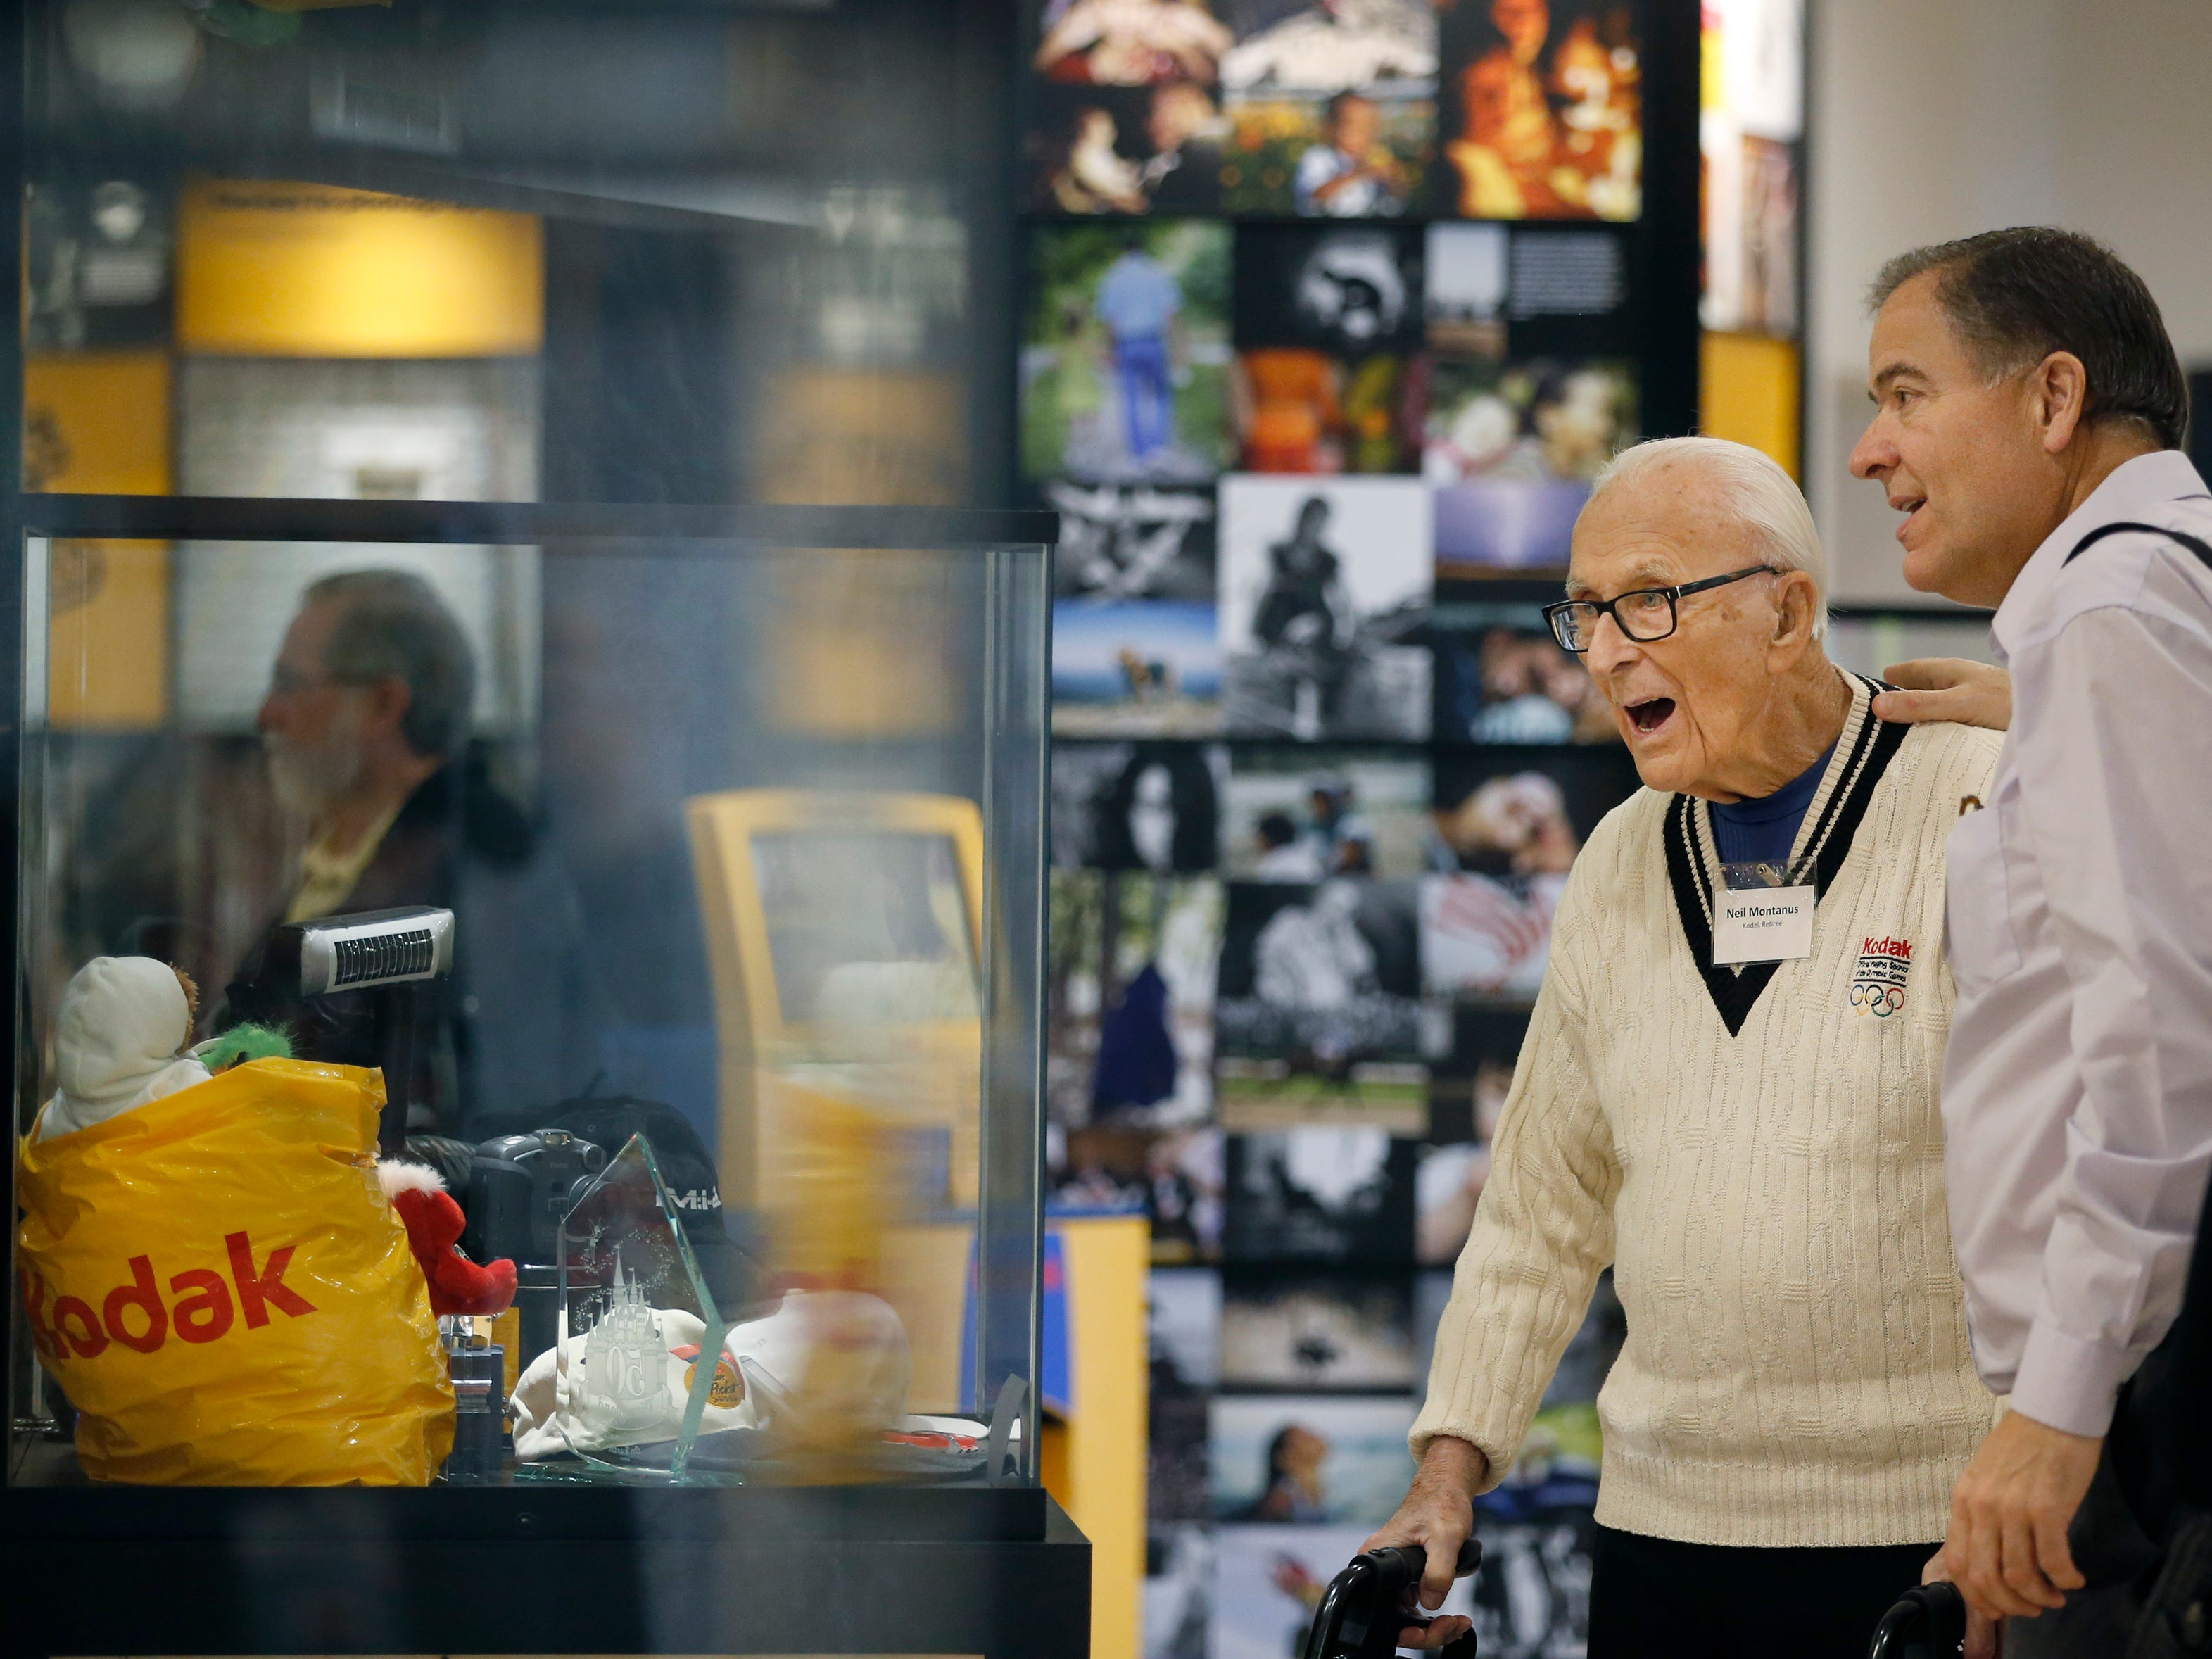 Kodak retiree and former photographer Neil Montanus, 91, walks through the exhibits with his son Jim during the Kodak Visitor Center Grand Opening. Montanus shot 55 of the 565 Coloramas throughout the years for the company, with some printed samples on display at the center.